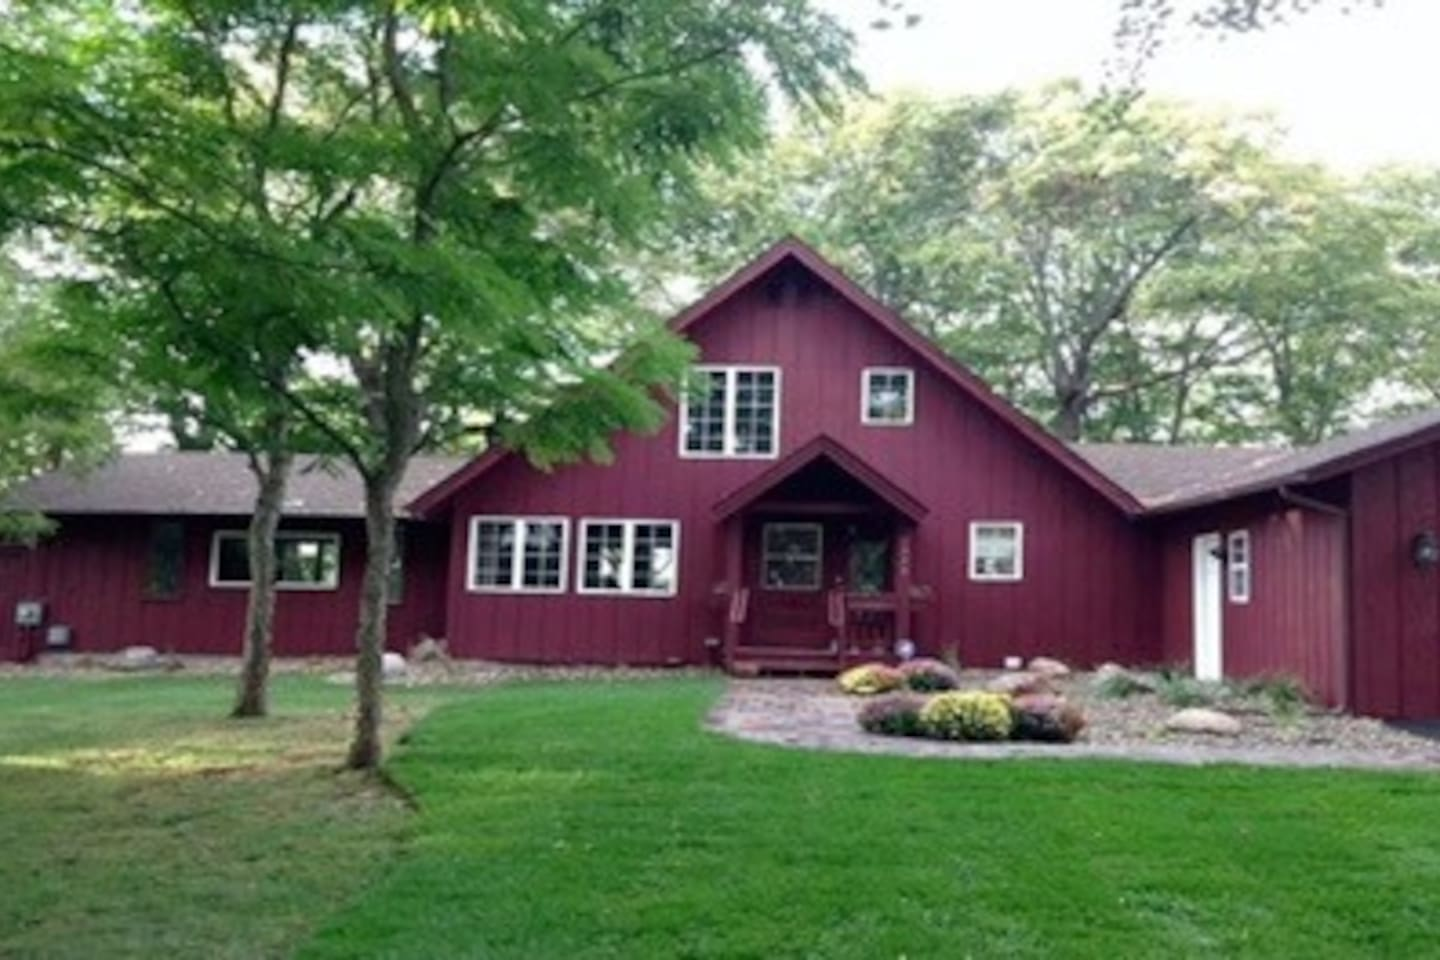 LAKE HOME Enjoy the best that Prior Lake has to offer in this beautifully remodeled home nestled on a heavily wooded home site with stunning views of lower Prior Lake. It offers architecturally designed features with remodeled modern amenities. This home features 4 bedrooms and 3 baths. It has a full kitchen, dining room, large family room and master suite on the main level. The upstairs has a bedroom and private bath. Pets are ok upon owner's discretion and with a pet deposit. Sand beach with boat dock